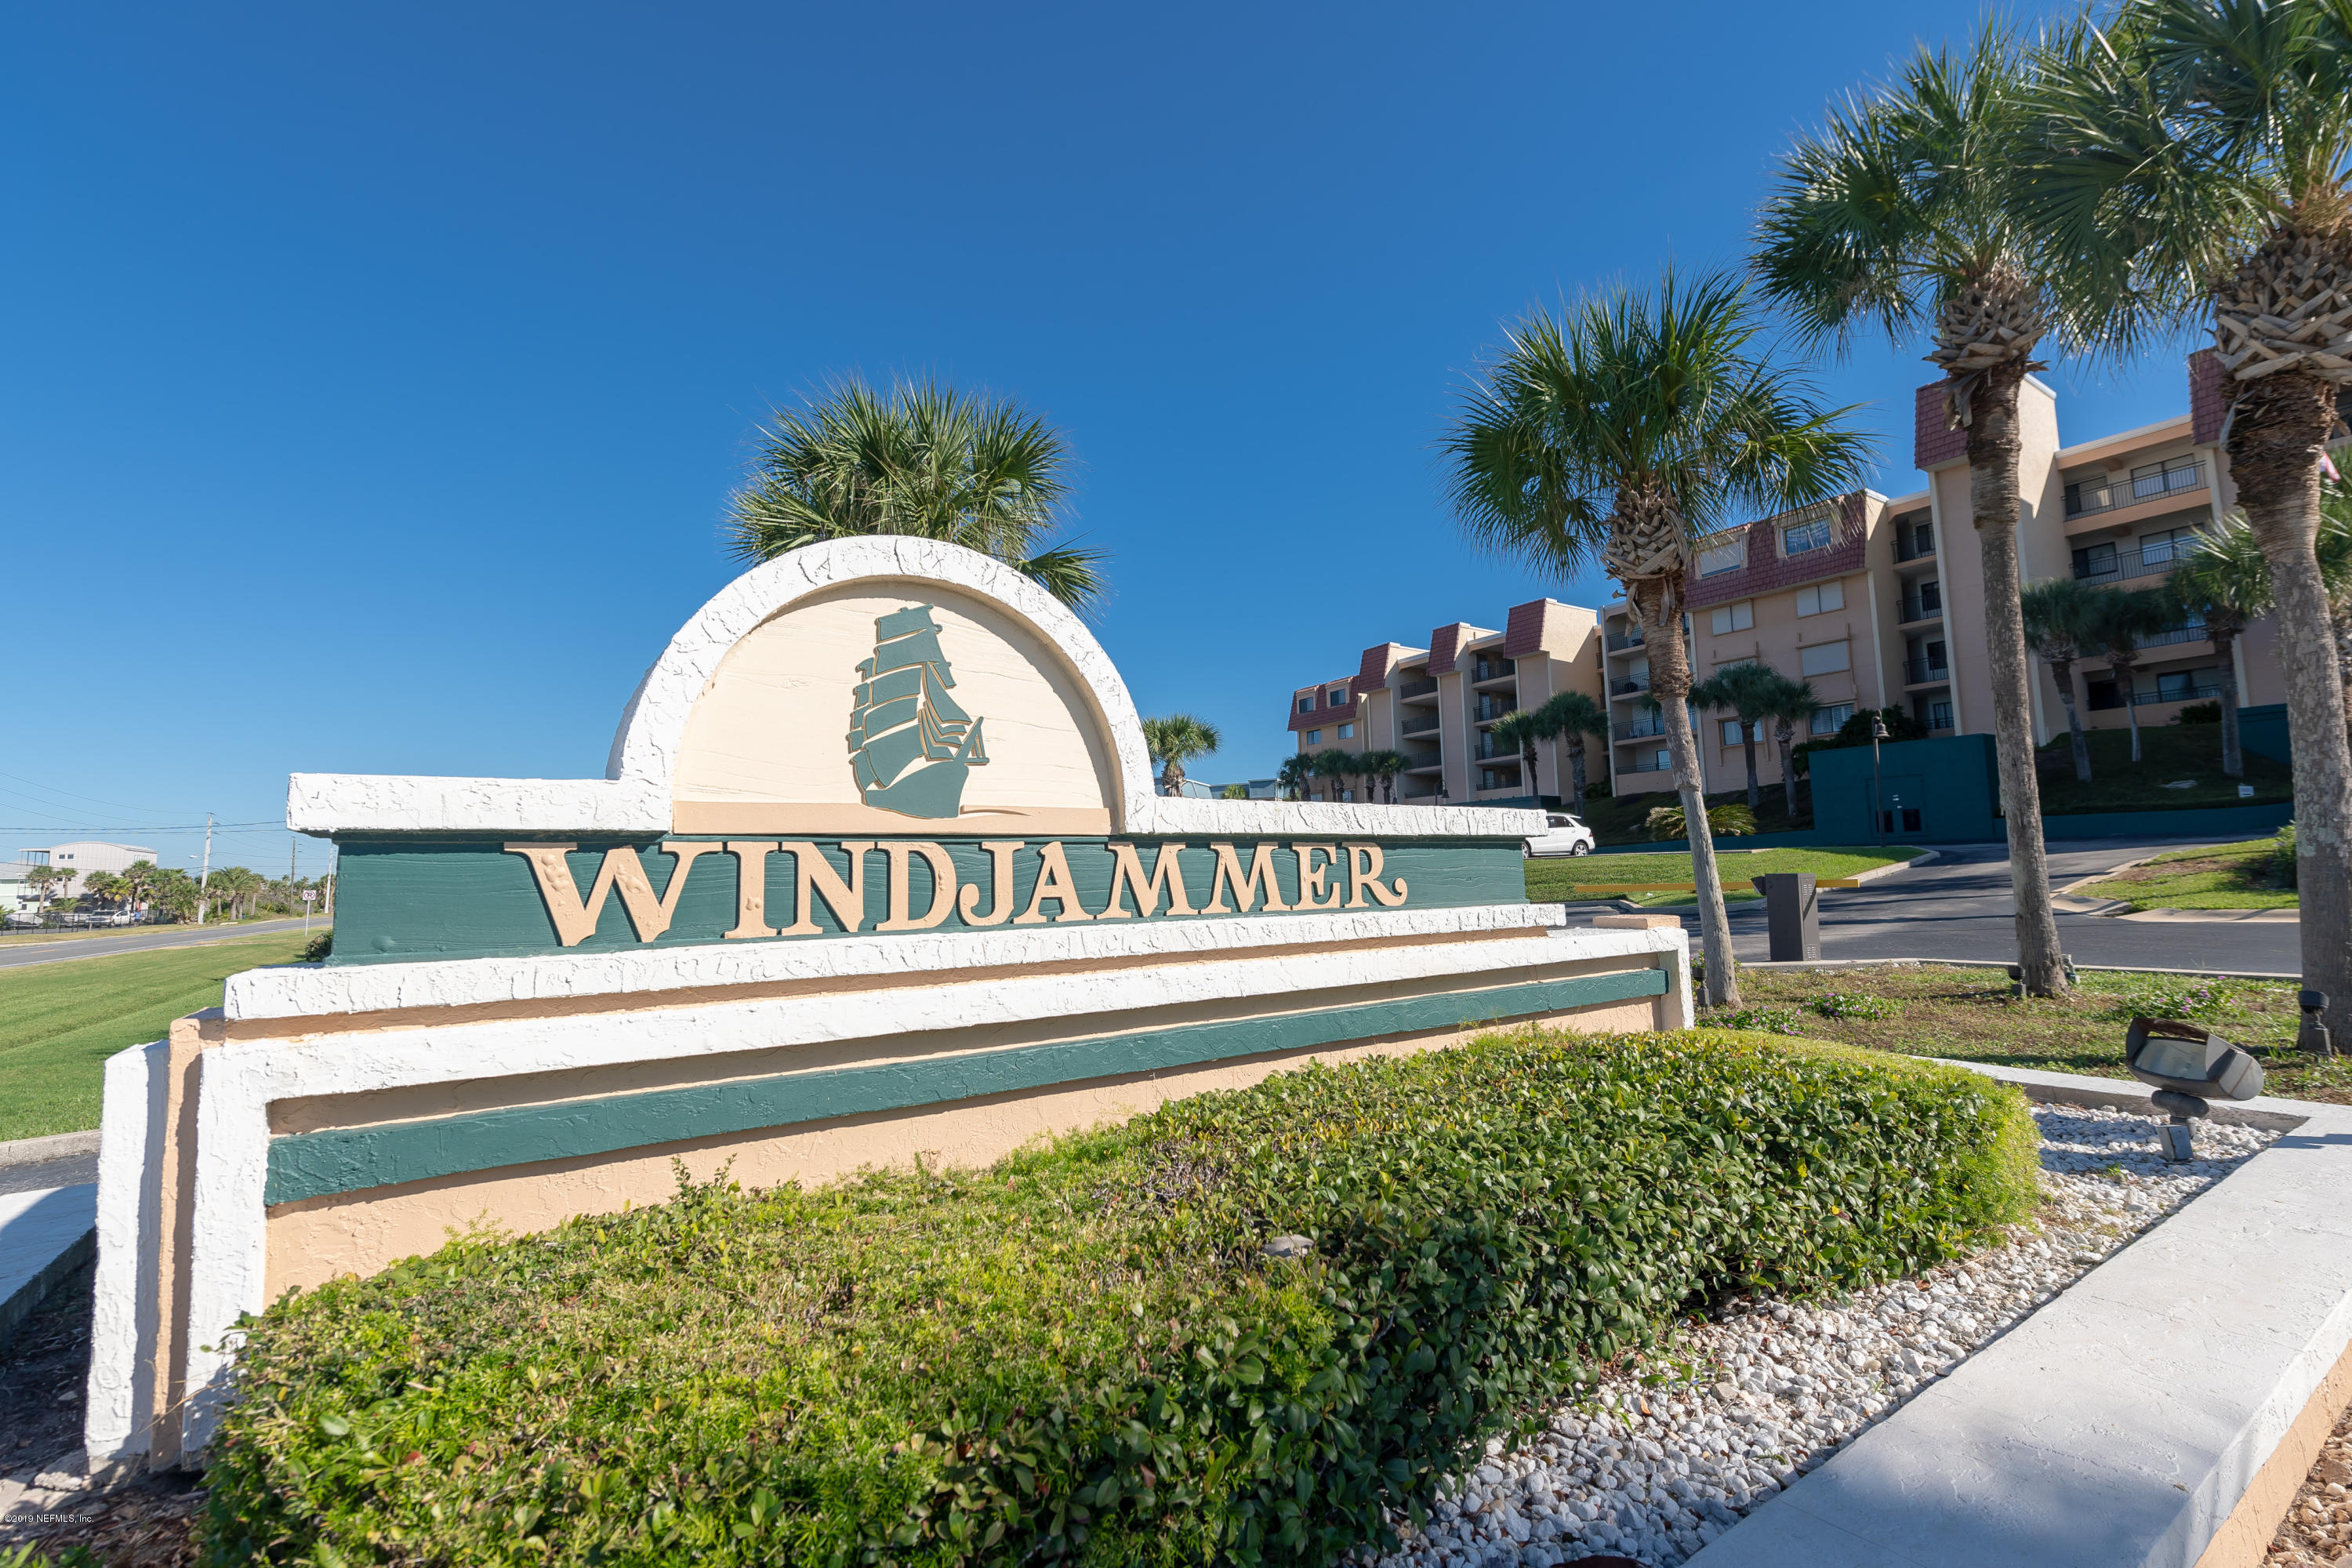 7780 A1A, ST AUGUSTINE, FLORIDA 32080, 2 Bedrooms Bedrooms, ,2 BathroomsBathrooms,For sale,A1A,1024896